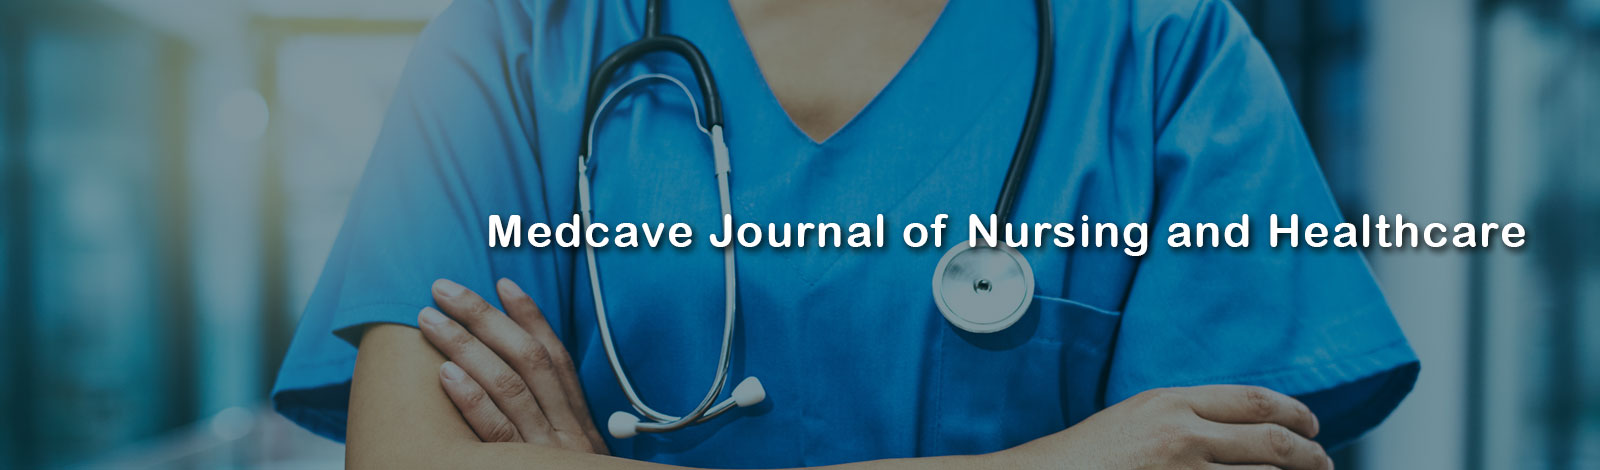 Med Journal of Nursing and Healthcare